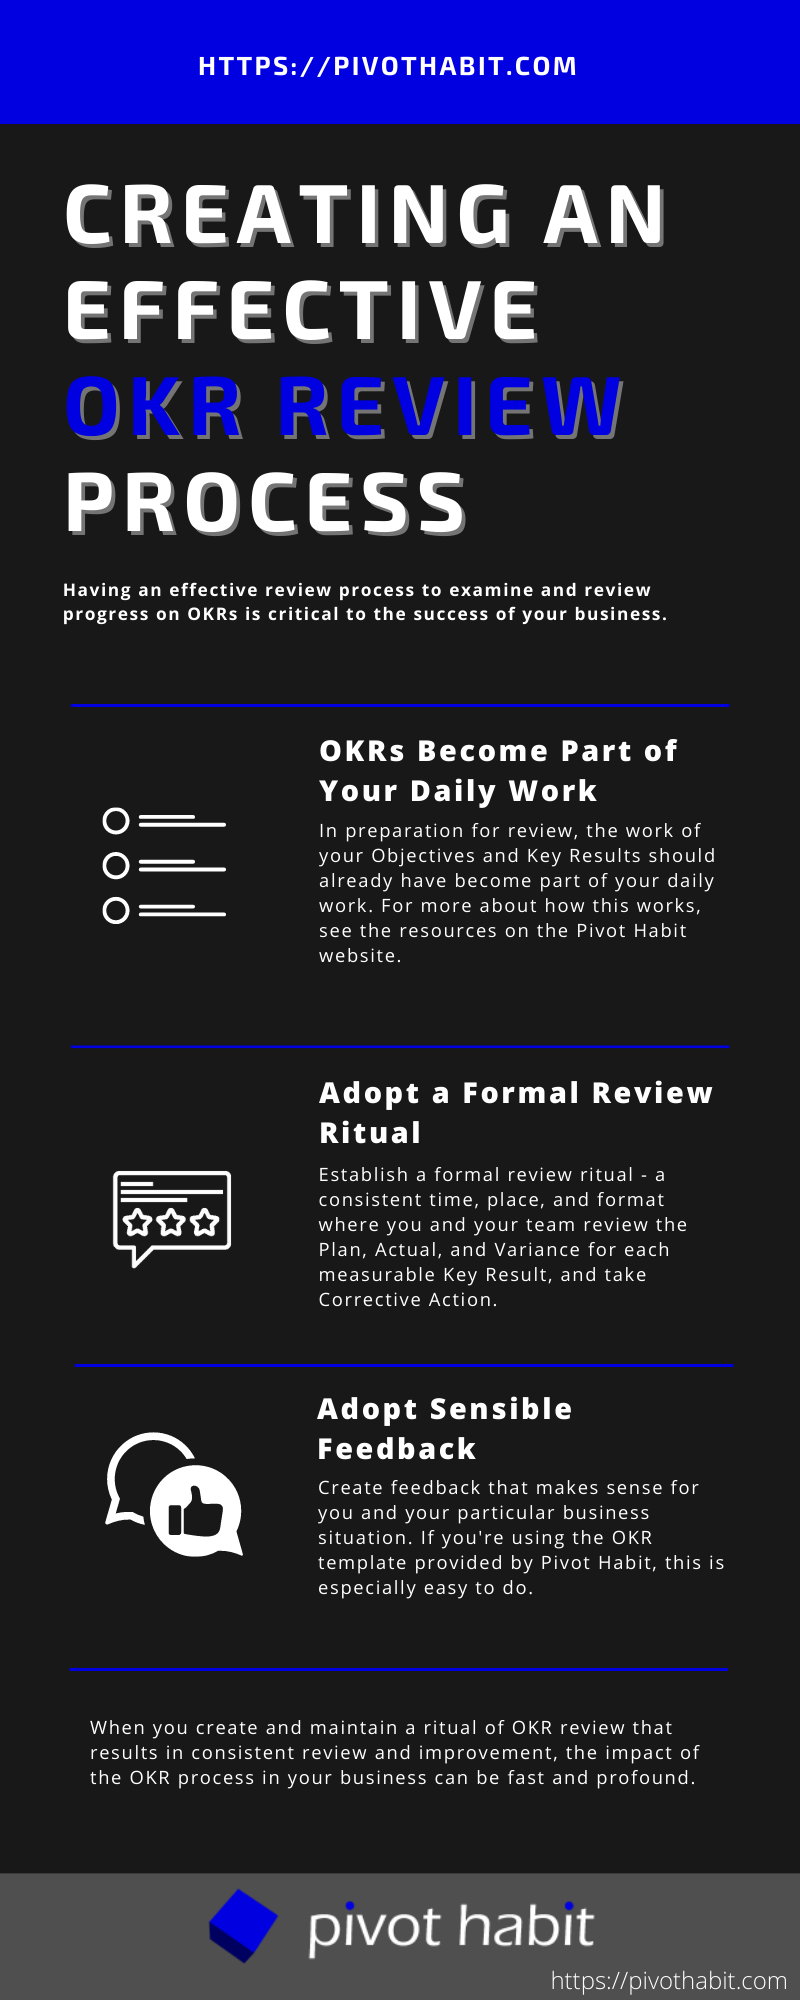 Four tips for how to create an effective OKR review process.